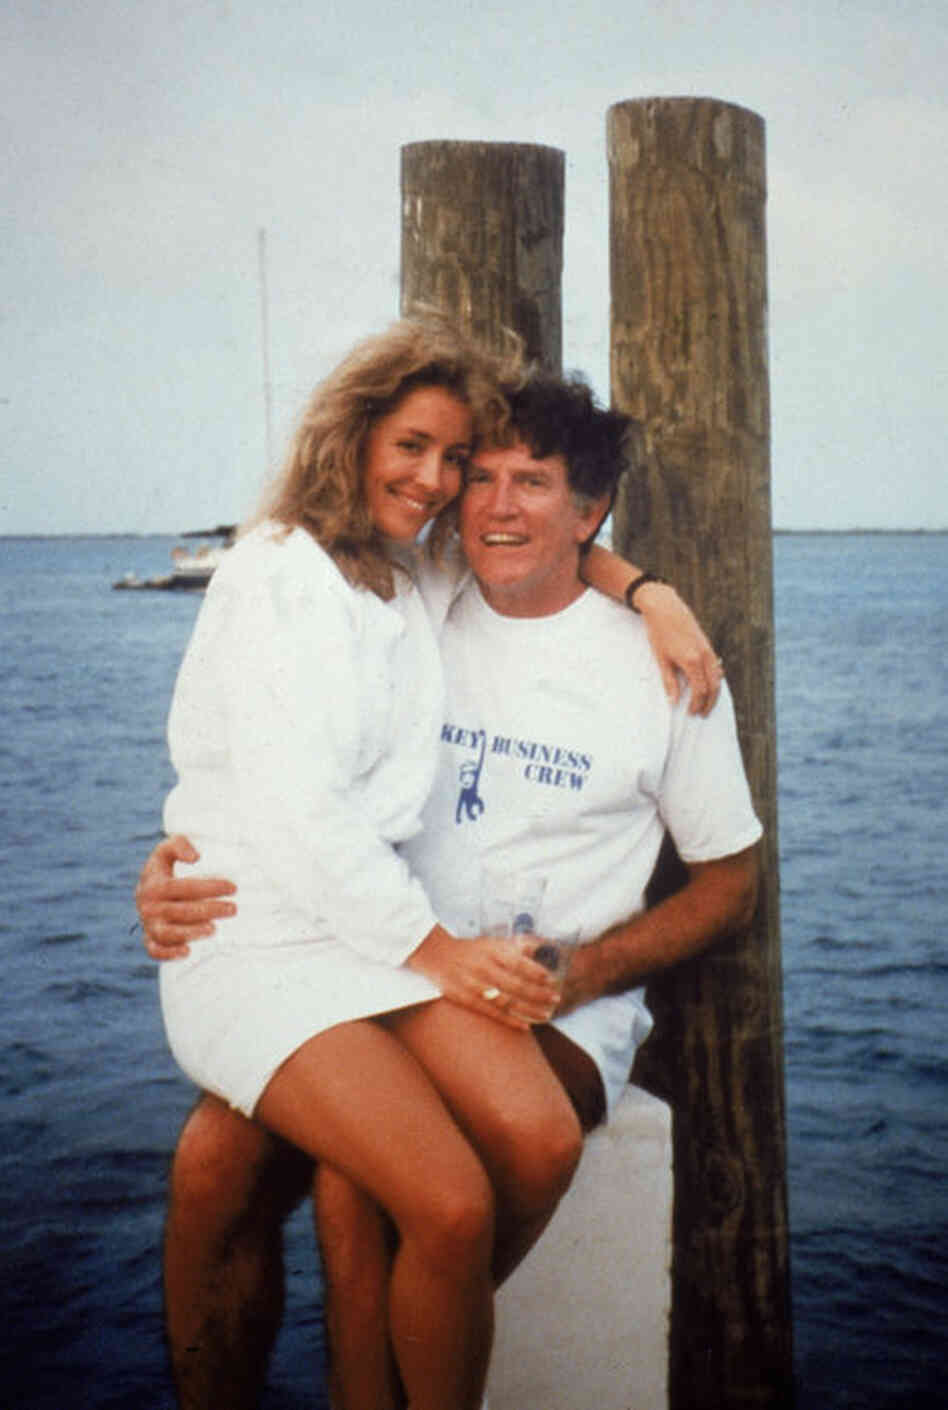 The 1987 presidential campaign of Democrat Gary Hart was derailed by revelations of an affair with model Donna Rice.